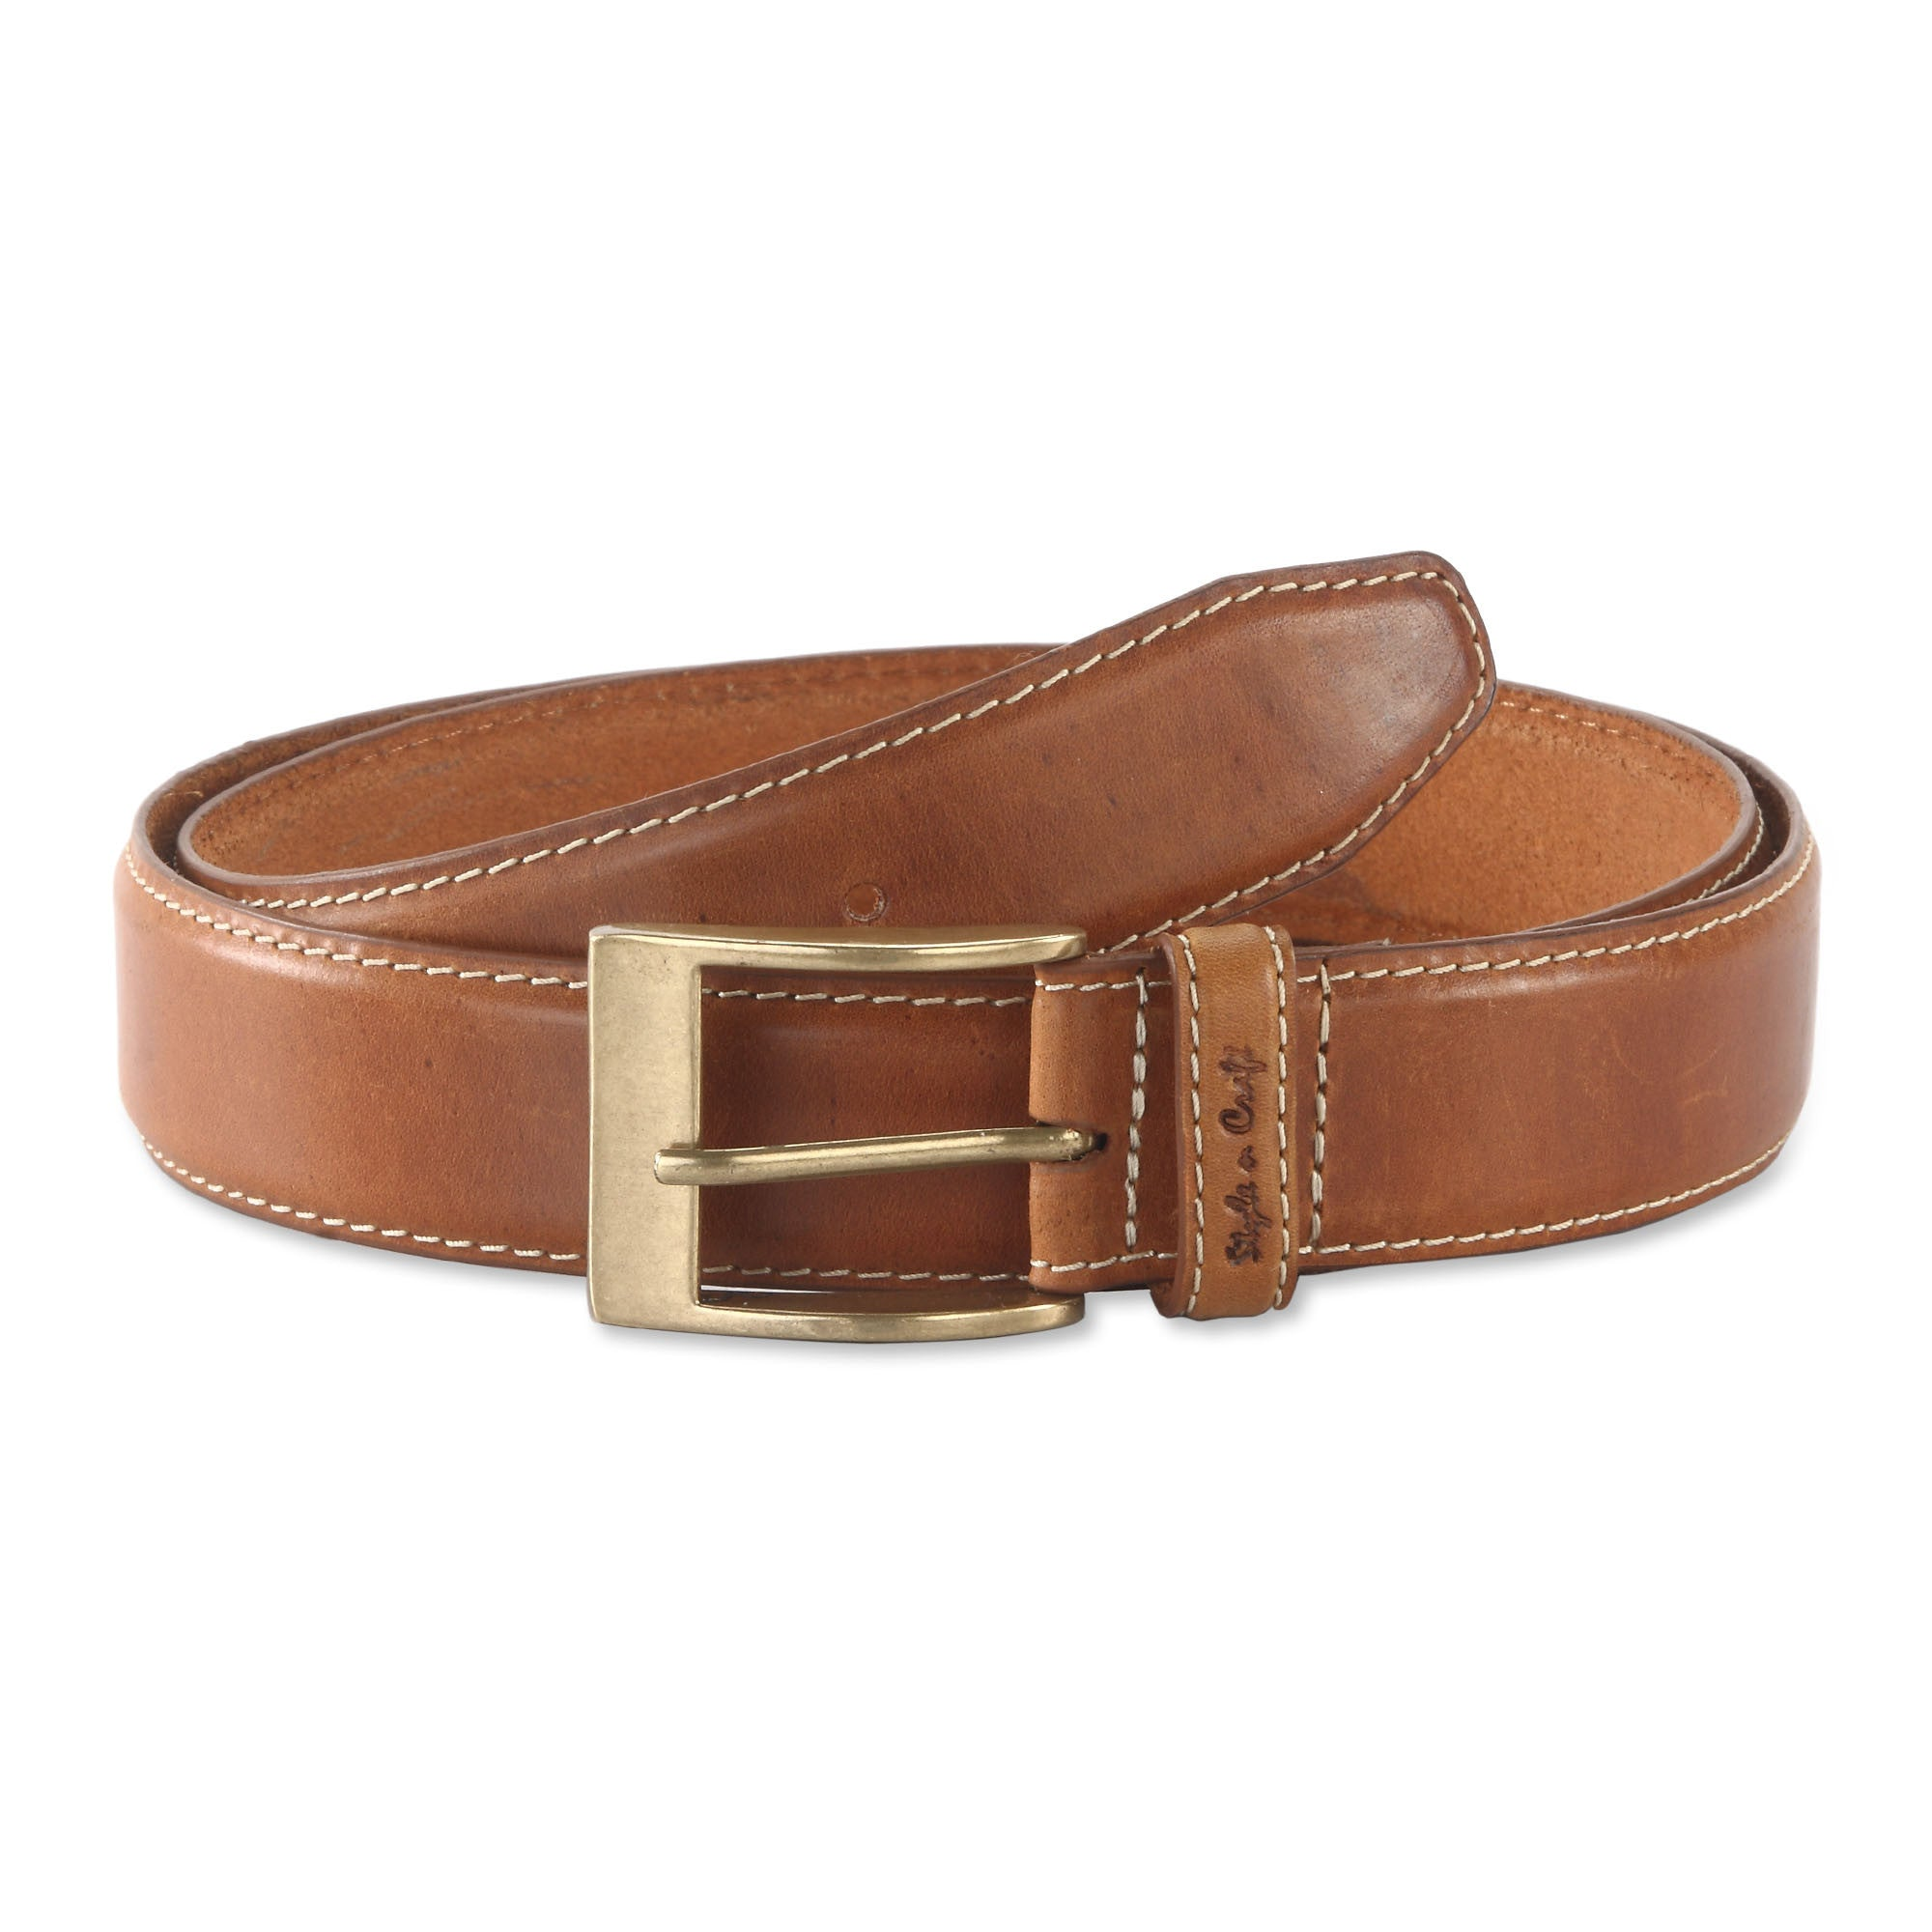 Style N Craft 391901-L One and a Half Inch Leather Belt in Tan Color at Sears.com